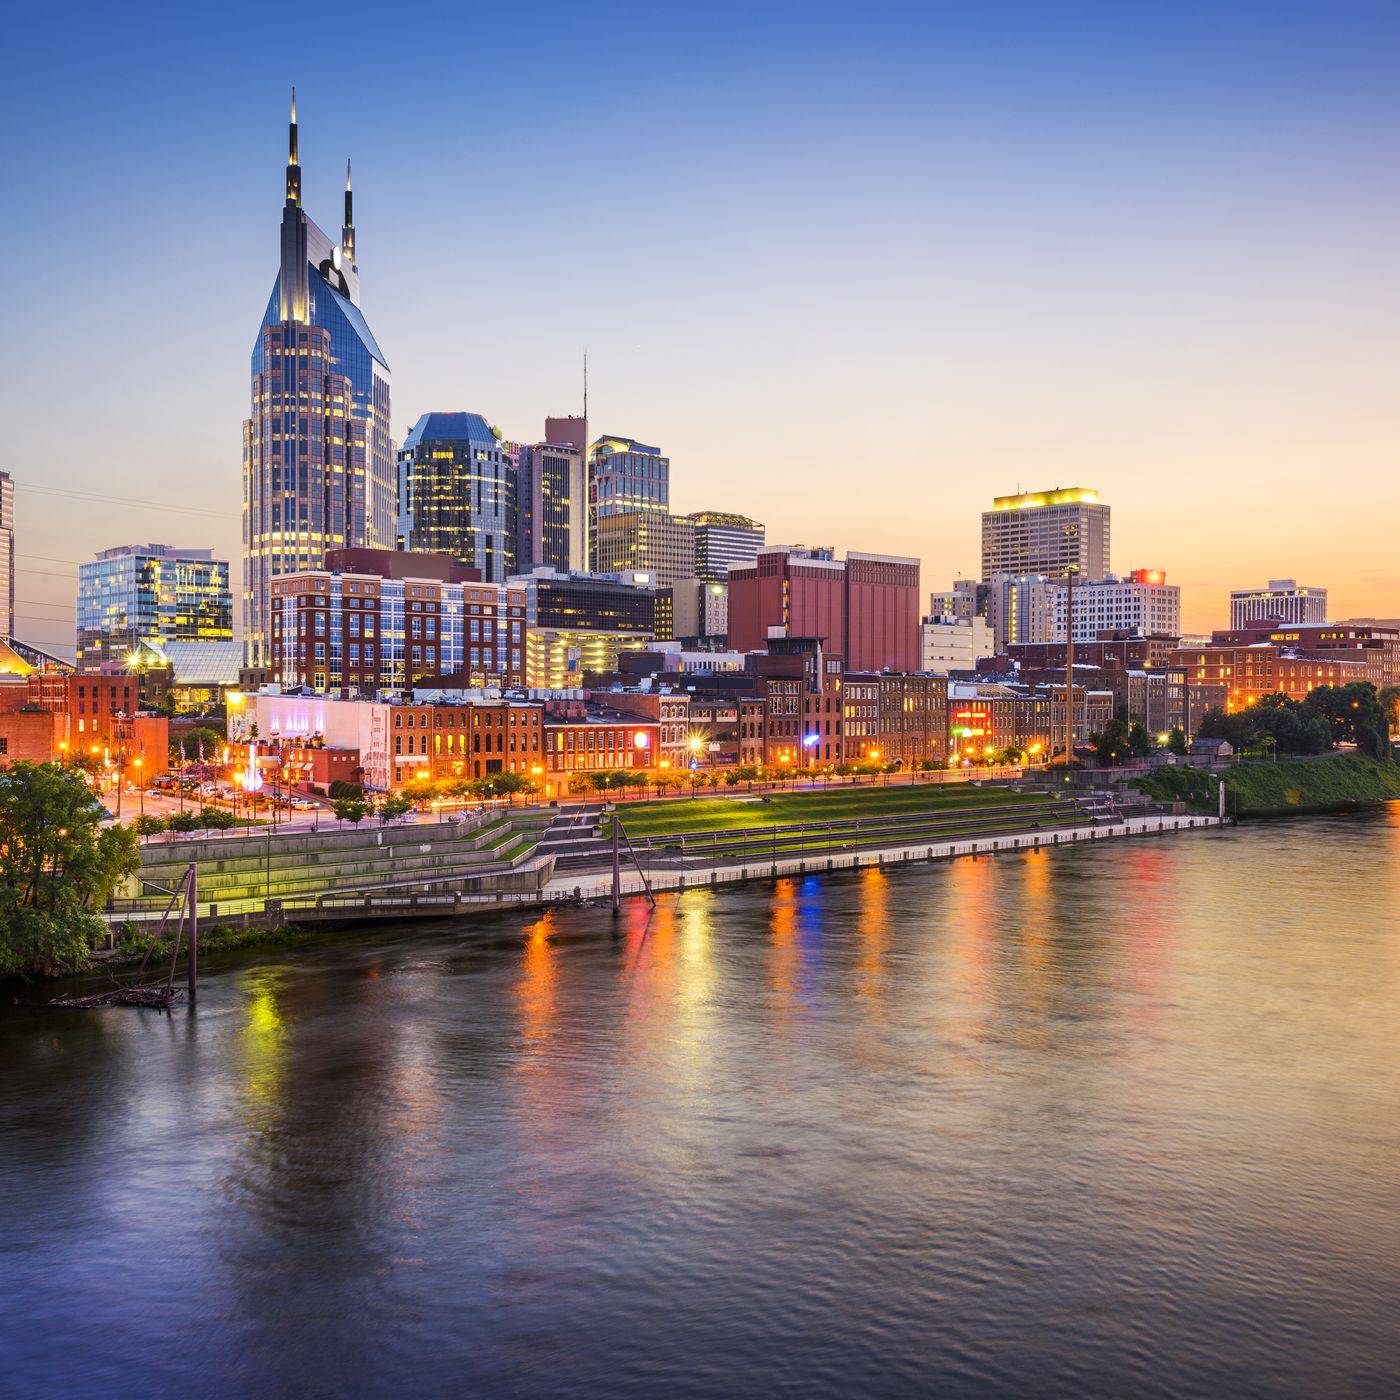 an eater's guide to eating and drinking in nashville - eater nashville